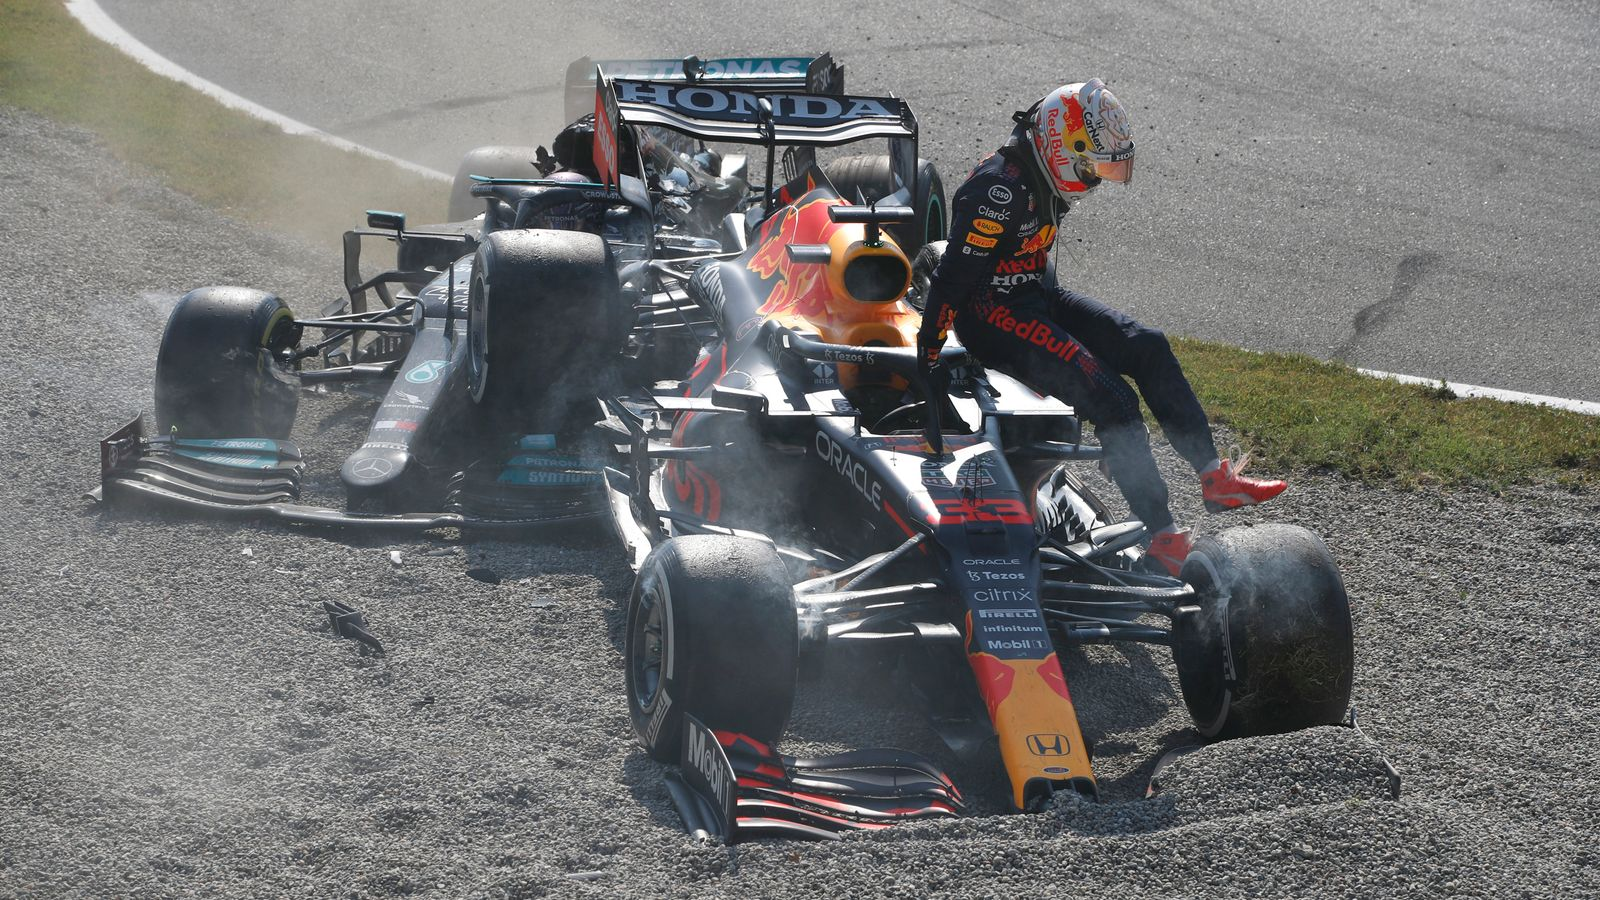 Russian GP: Lewis Hamilton and Max Verstappen 'very likely' to crash again this season, says F1 drivers' chief